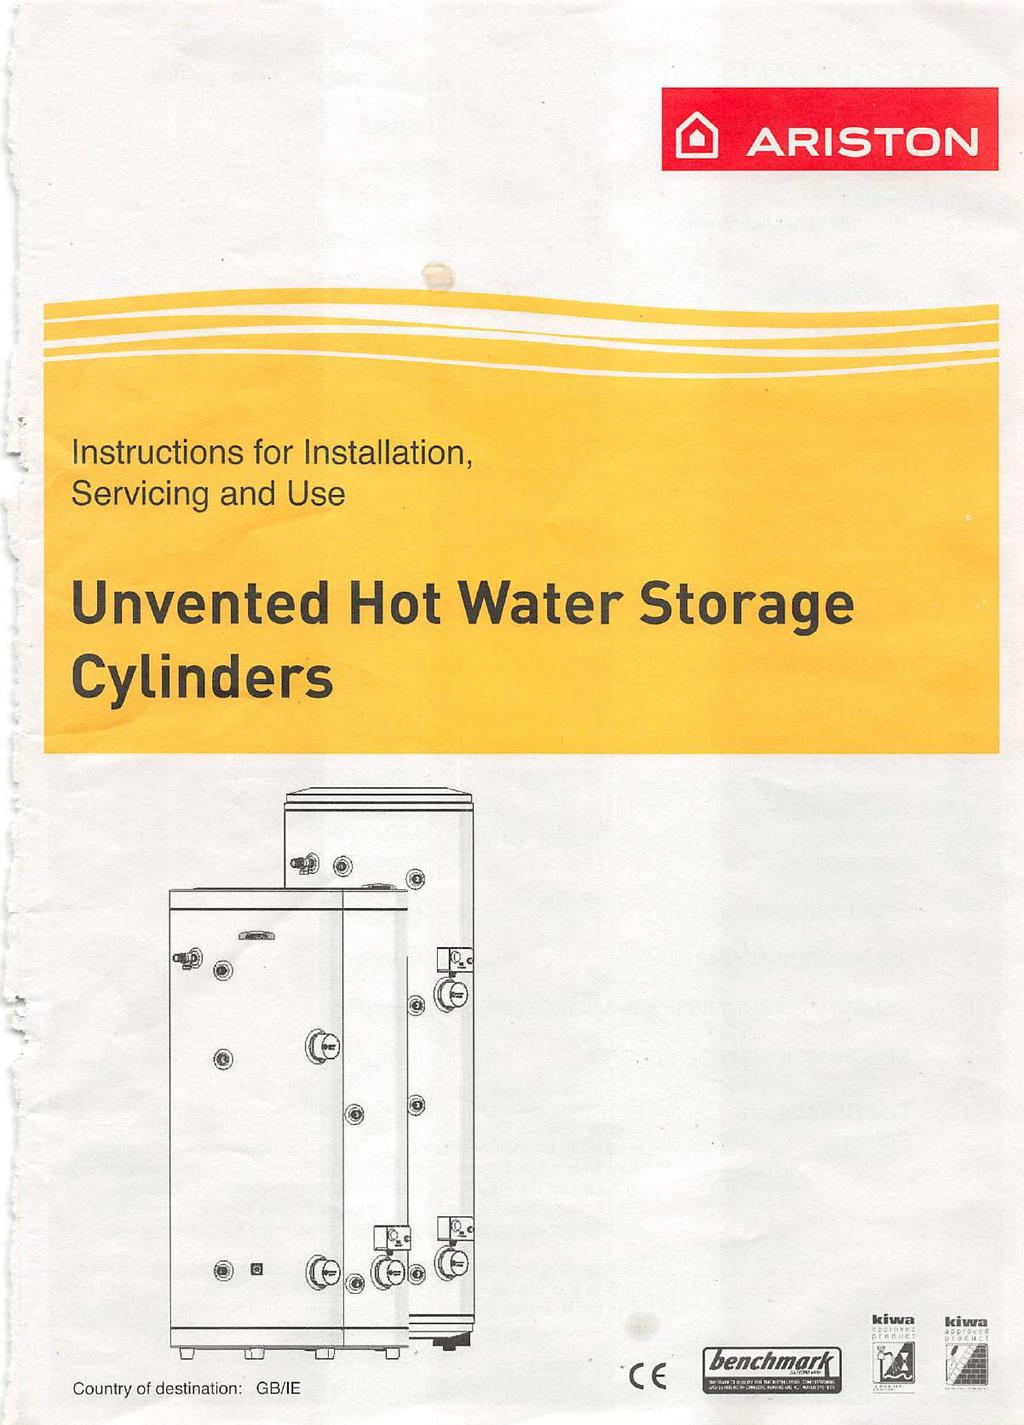 Unvented Hot Water Storage Cylinders - PDF